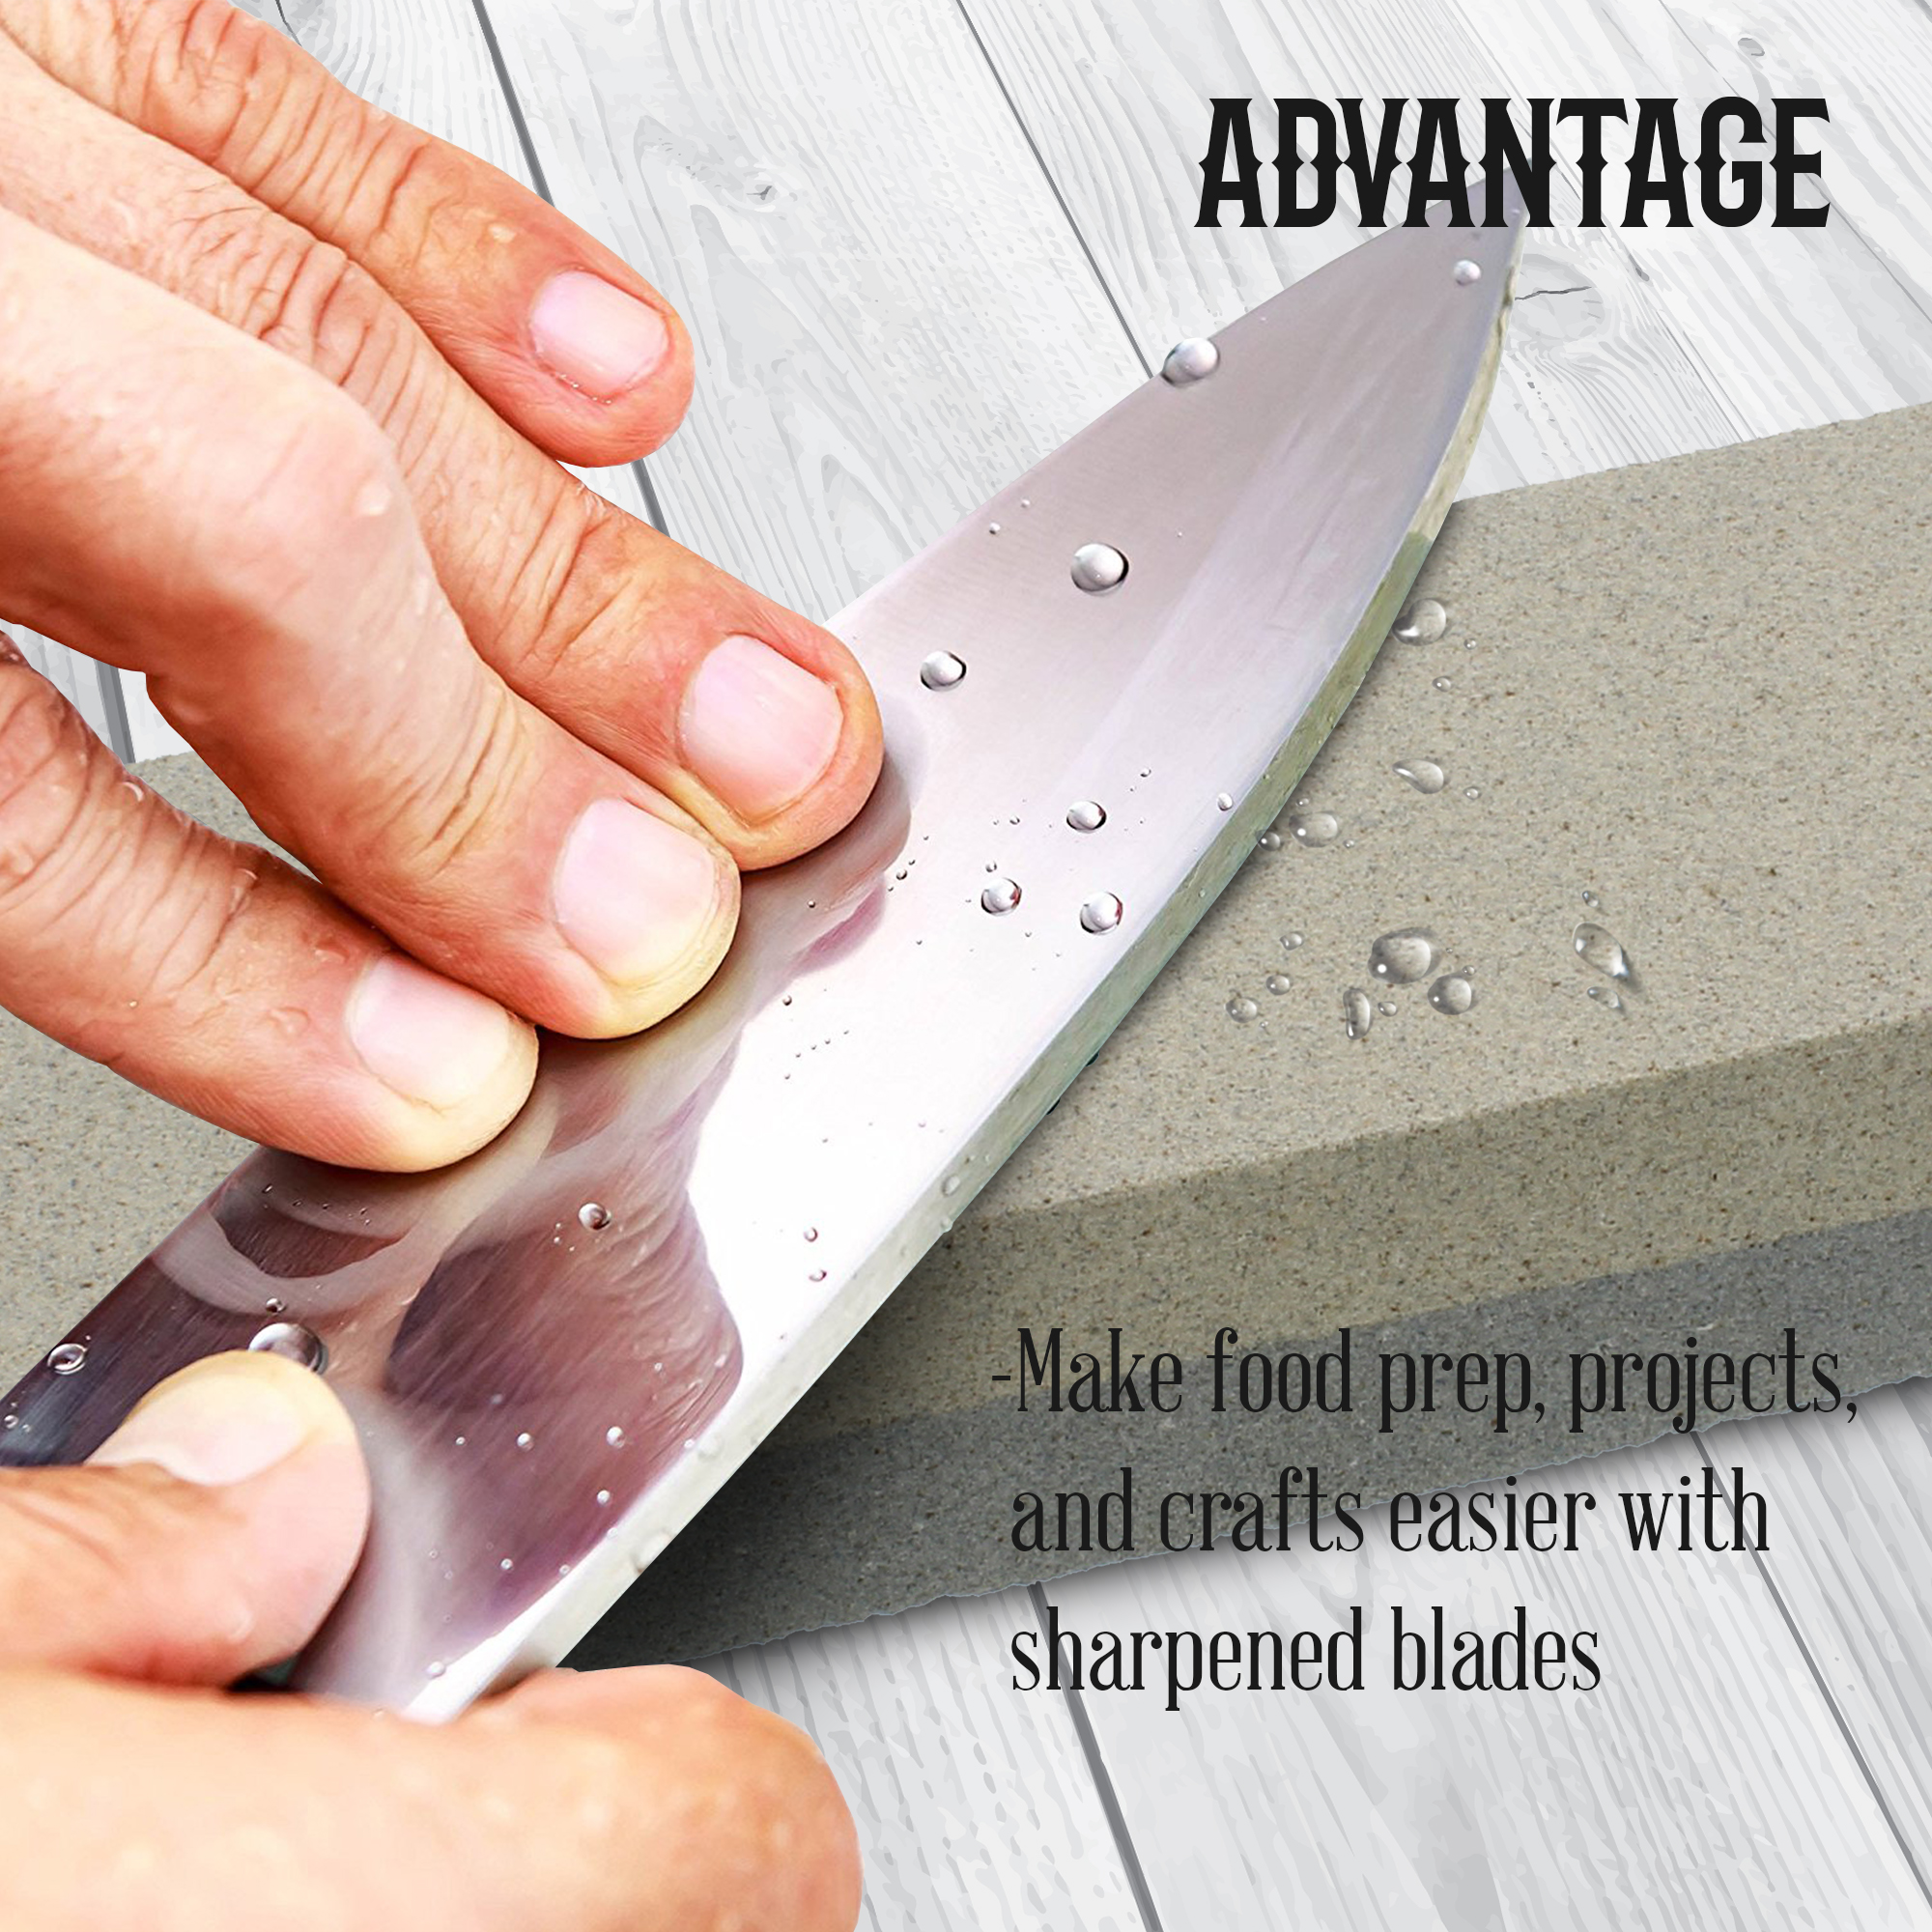 Knife-Straight-Blade-Manual-Sharpener-Tool-Dual-Grit-Sharpening-Stone thumbnail 20